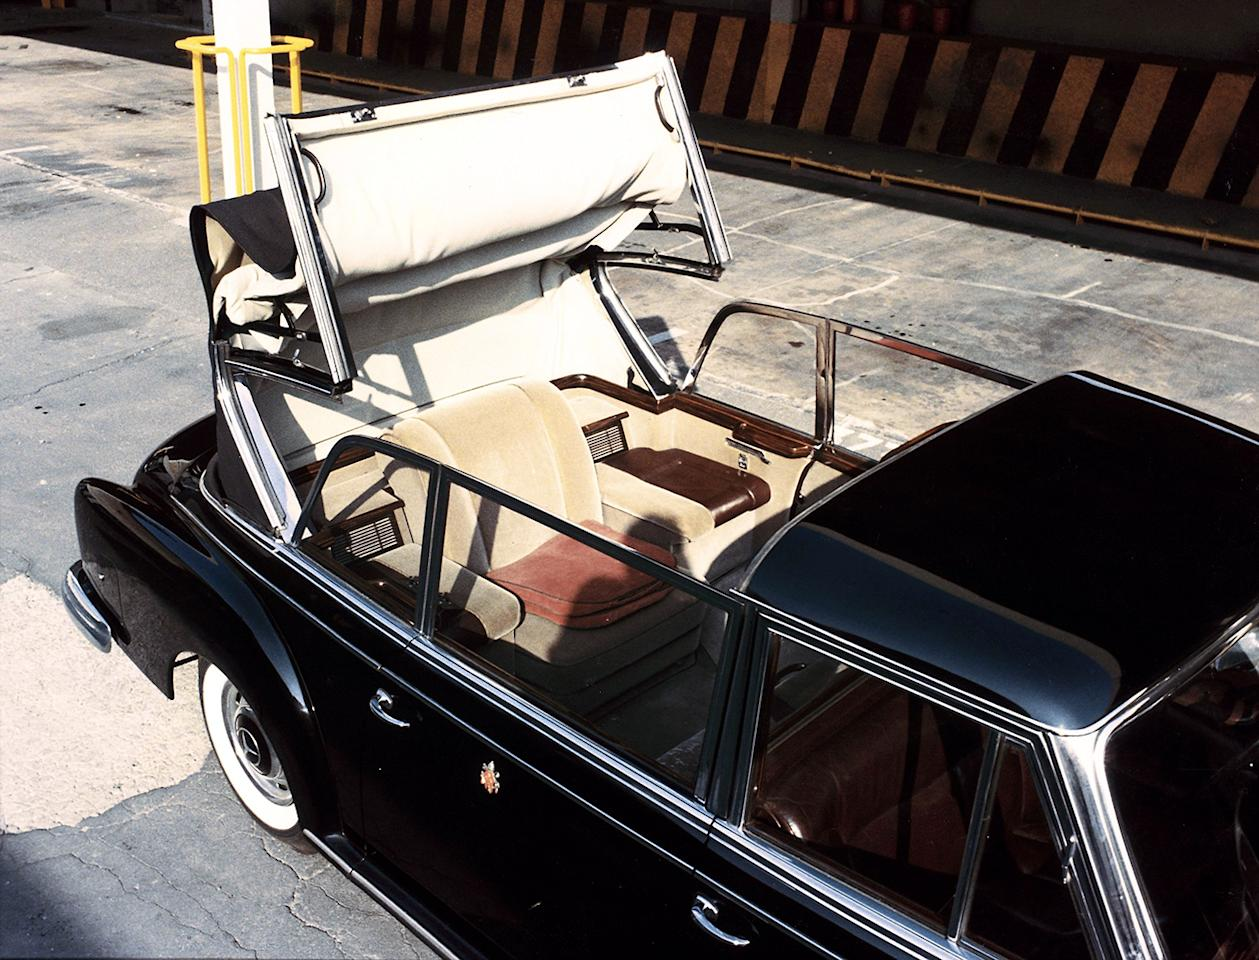 Soft-top for the rear seat: The Mercedes-Benz 300 d presented in 1960 to the Vatican as a new popemobile by Daimler-Benz AG had been designed as a landaulet.